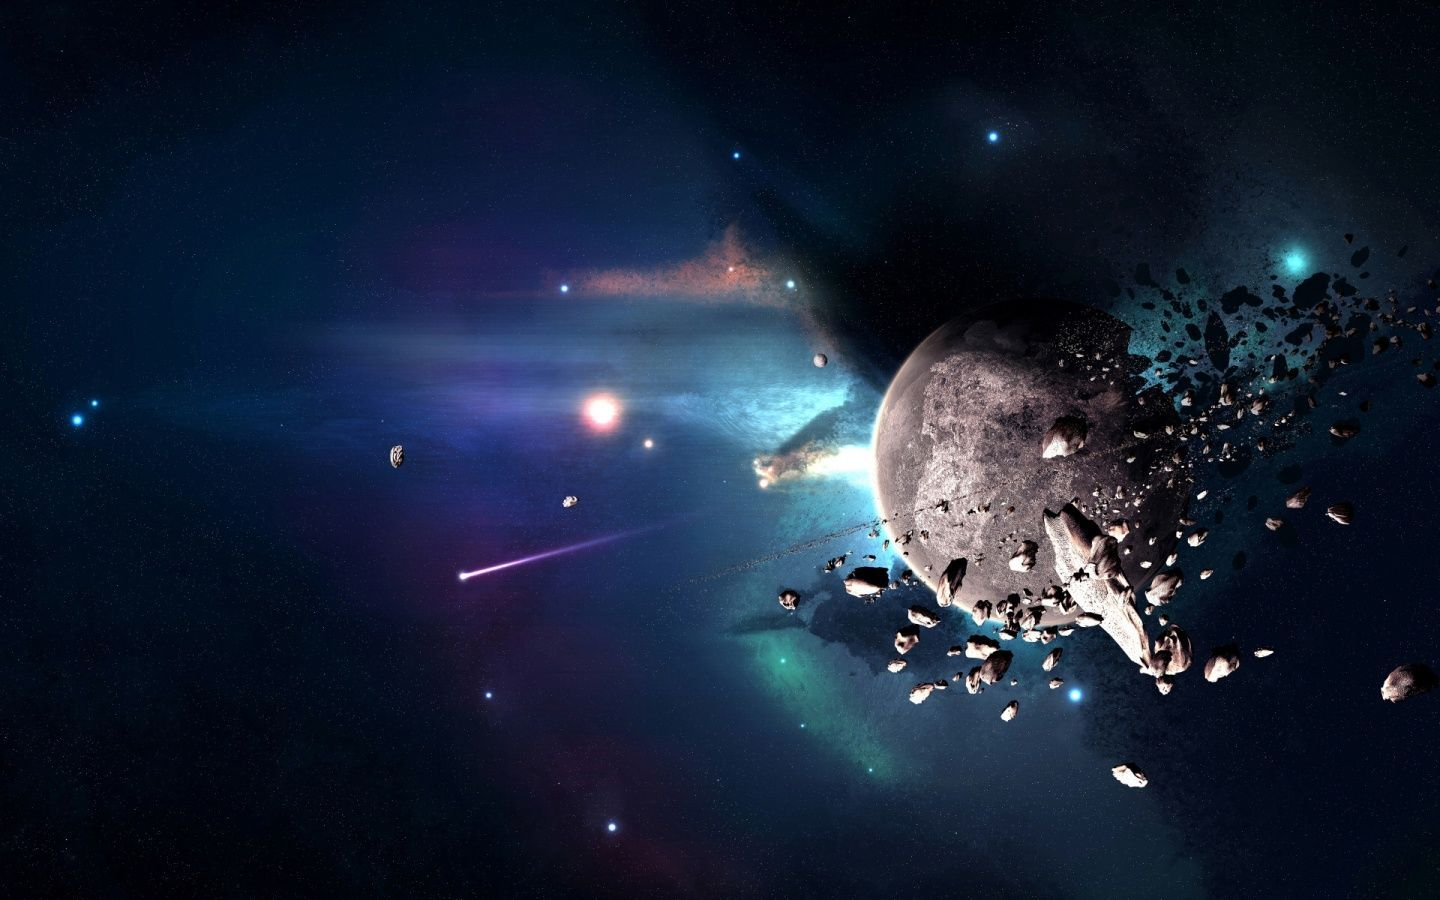 Space, HD Quality Wallpapers For Free